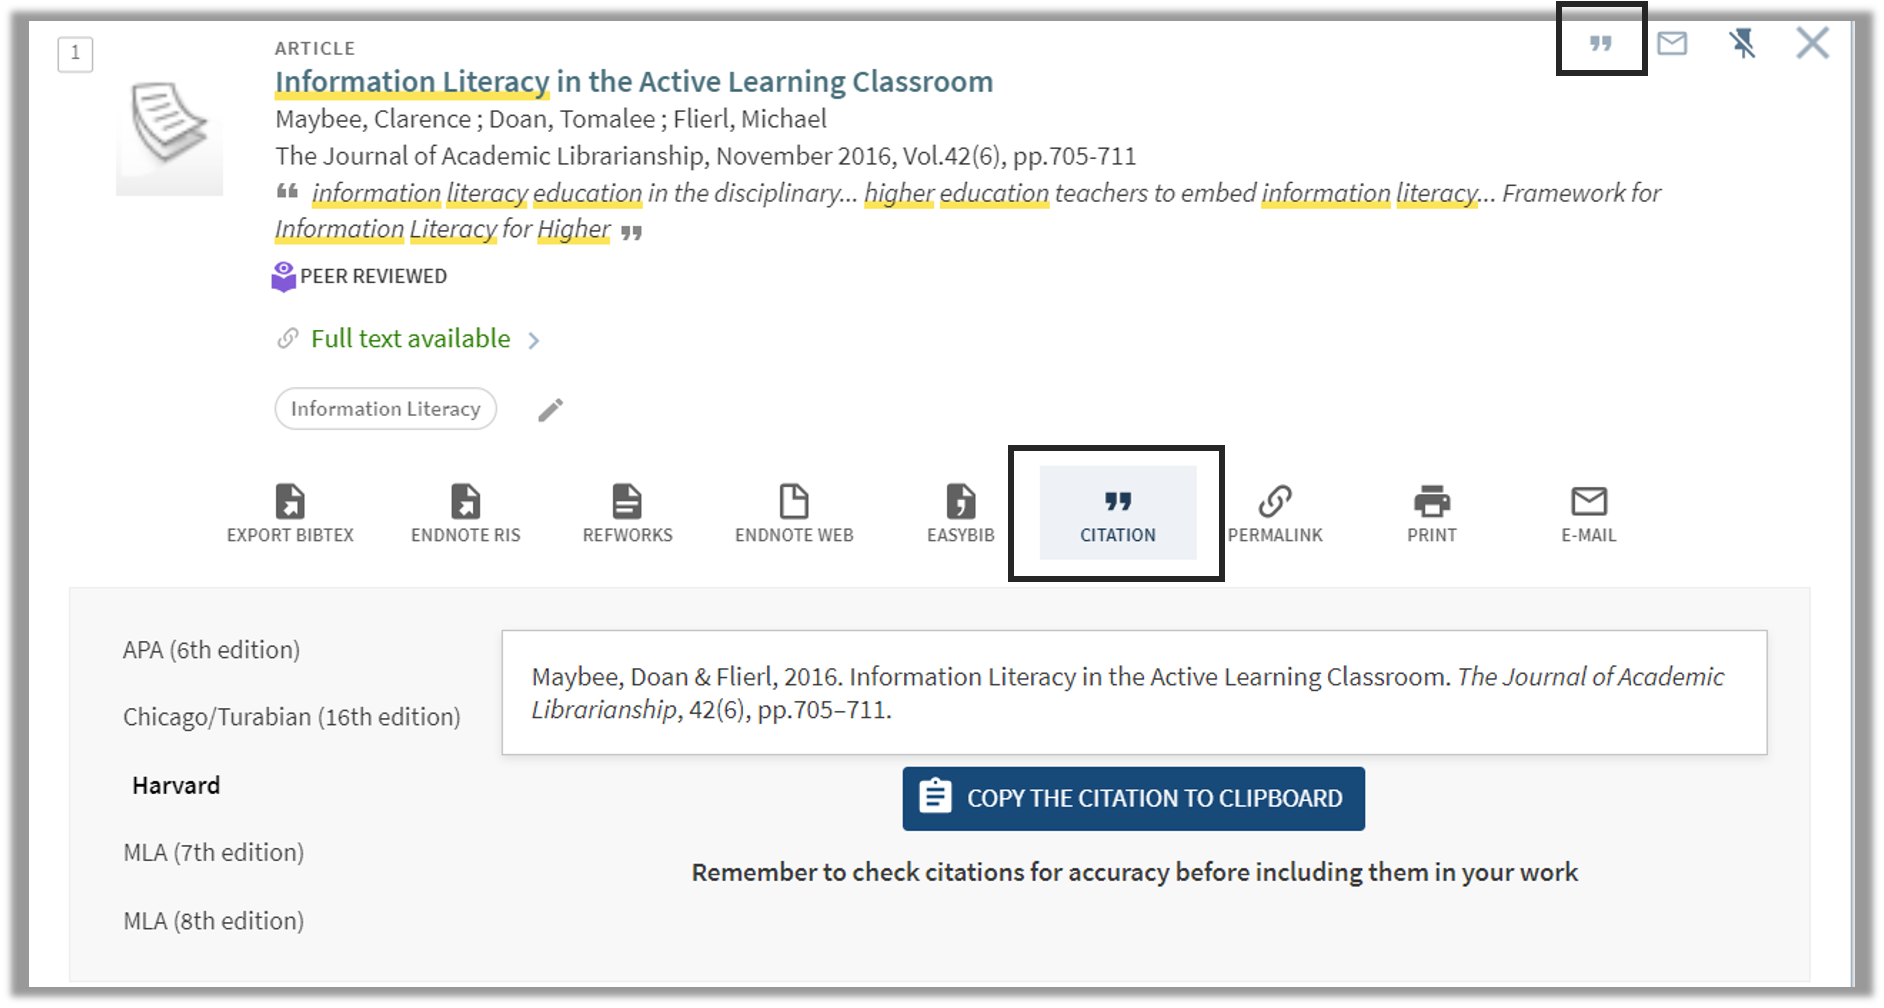 Image showing the citation button in Lbrary Search